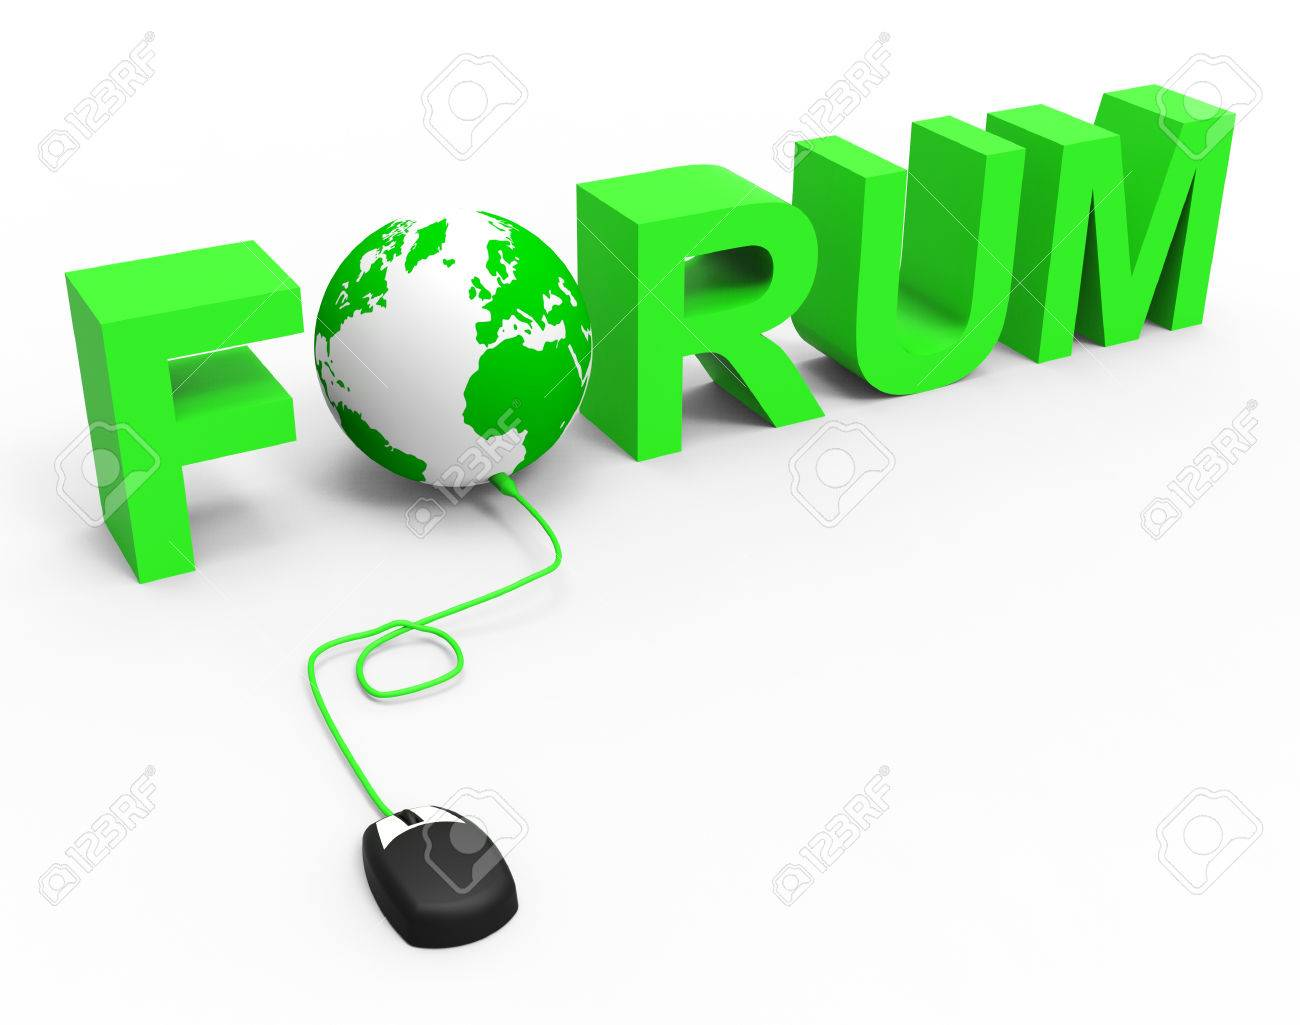 Internet Forum Meaning World Wide Web And Web Site Stock Photo ...